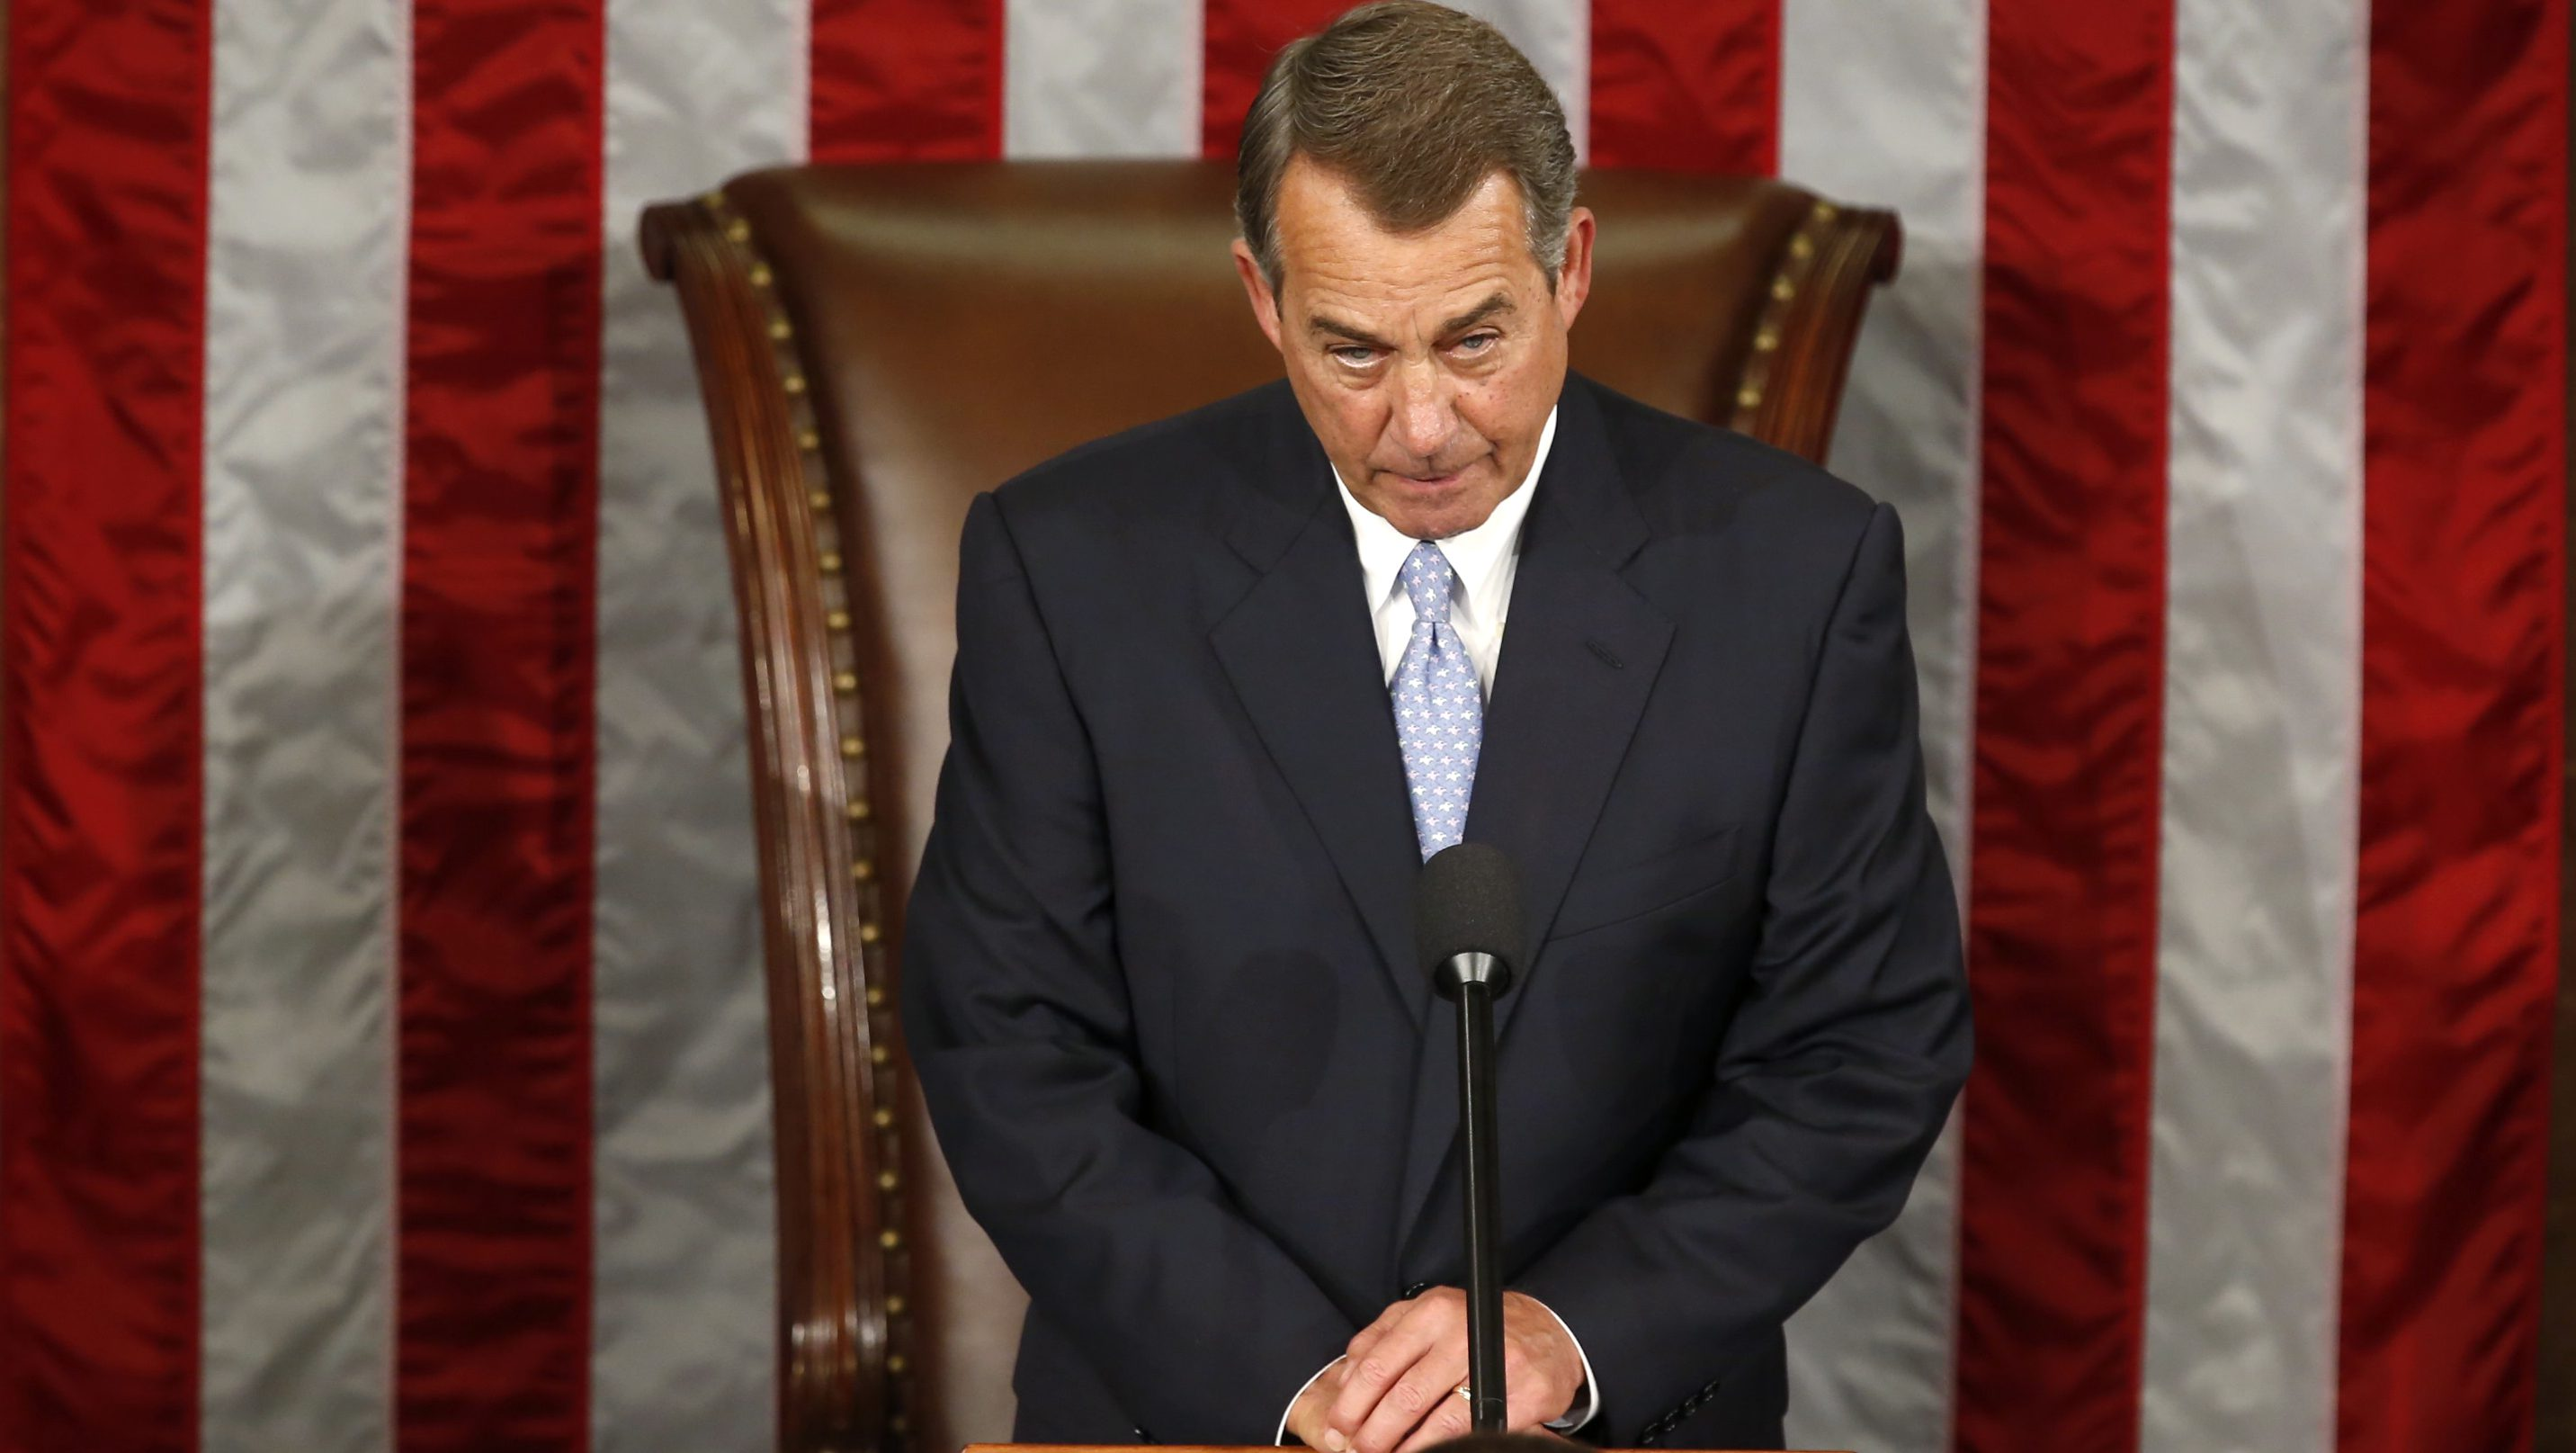 Outgoing House Speaker Boehner takes his place during election for the new Speaker of the U.S. House of Representatives on Capitol Hill in Washington